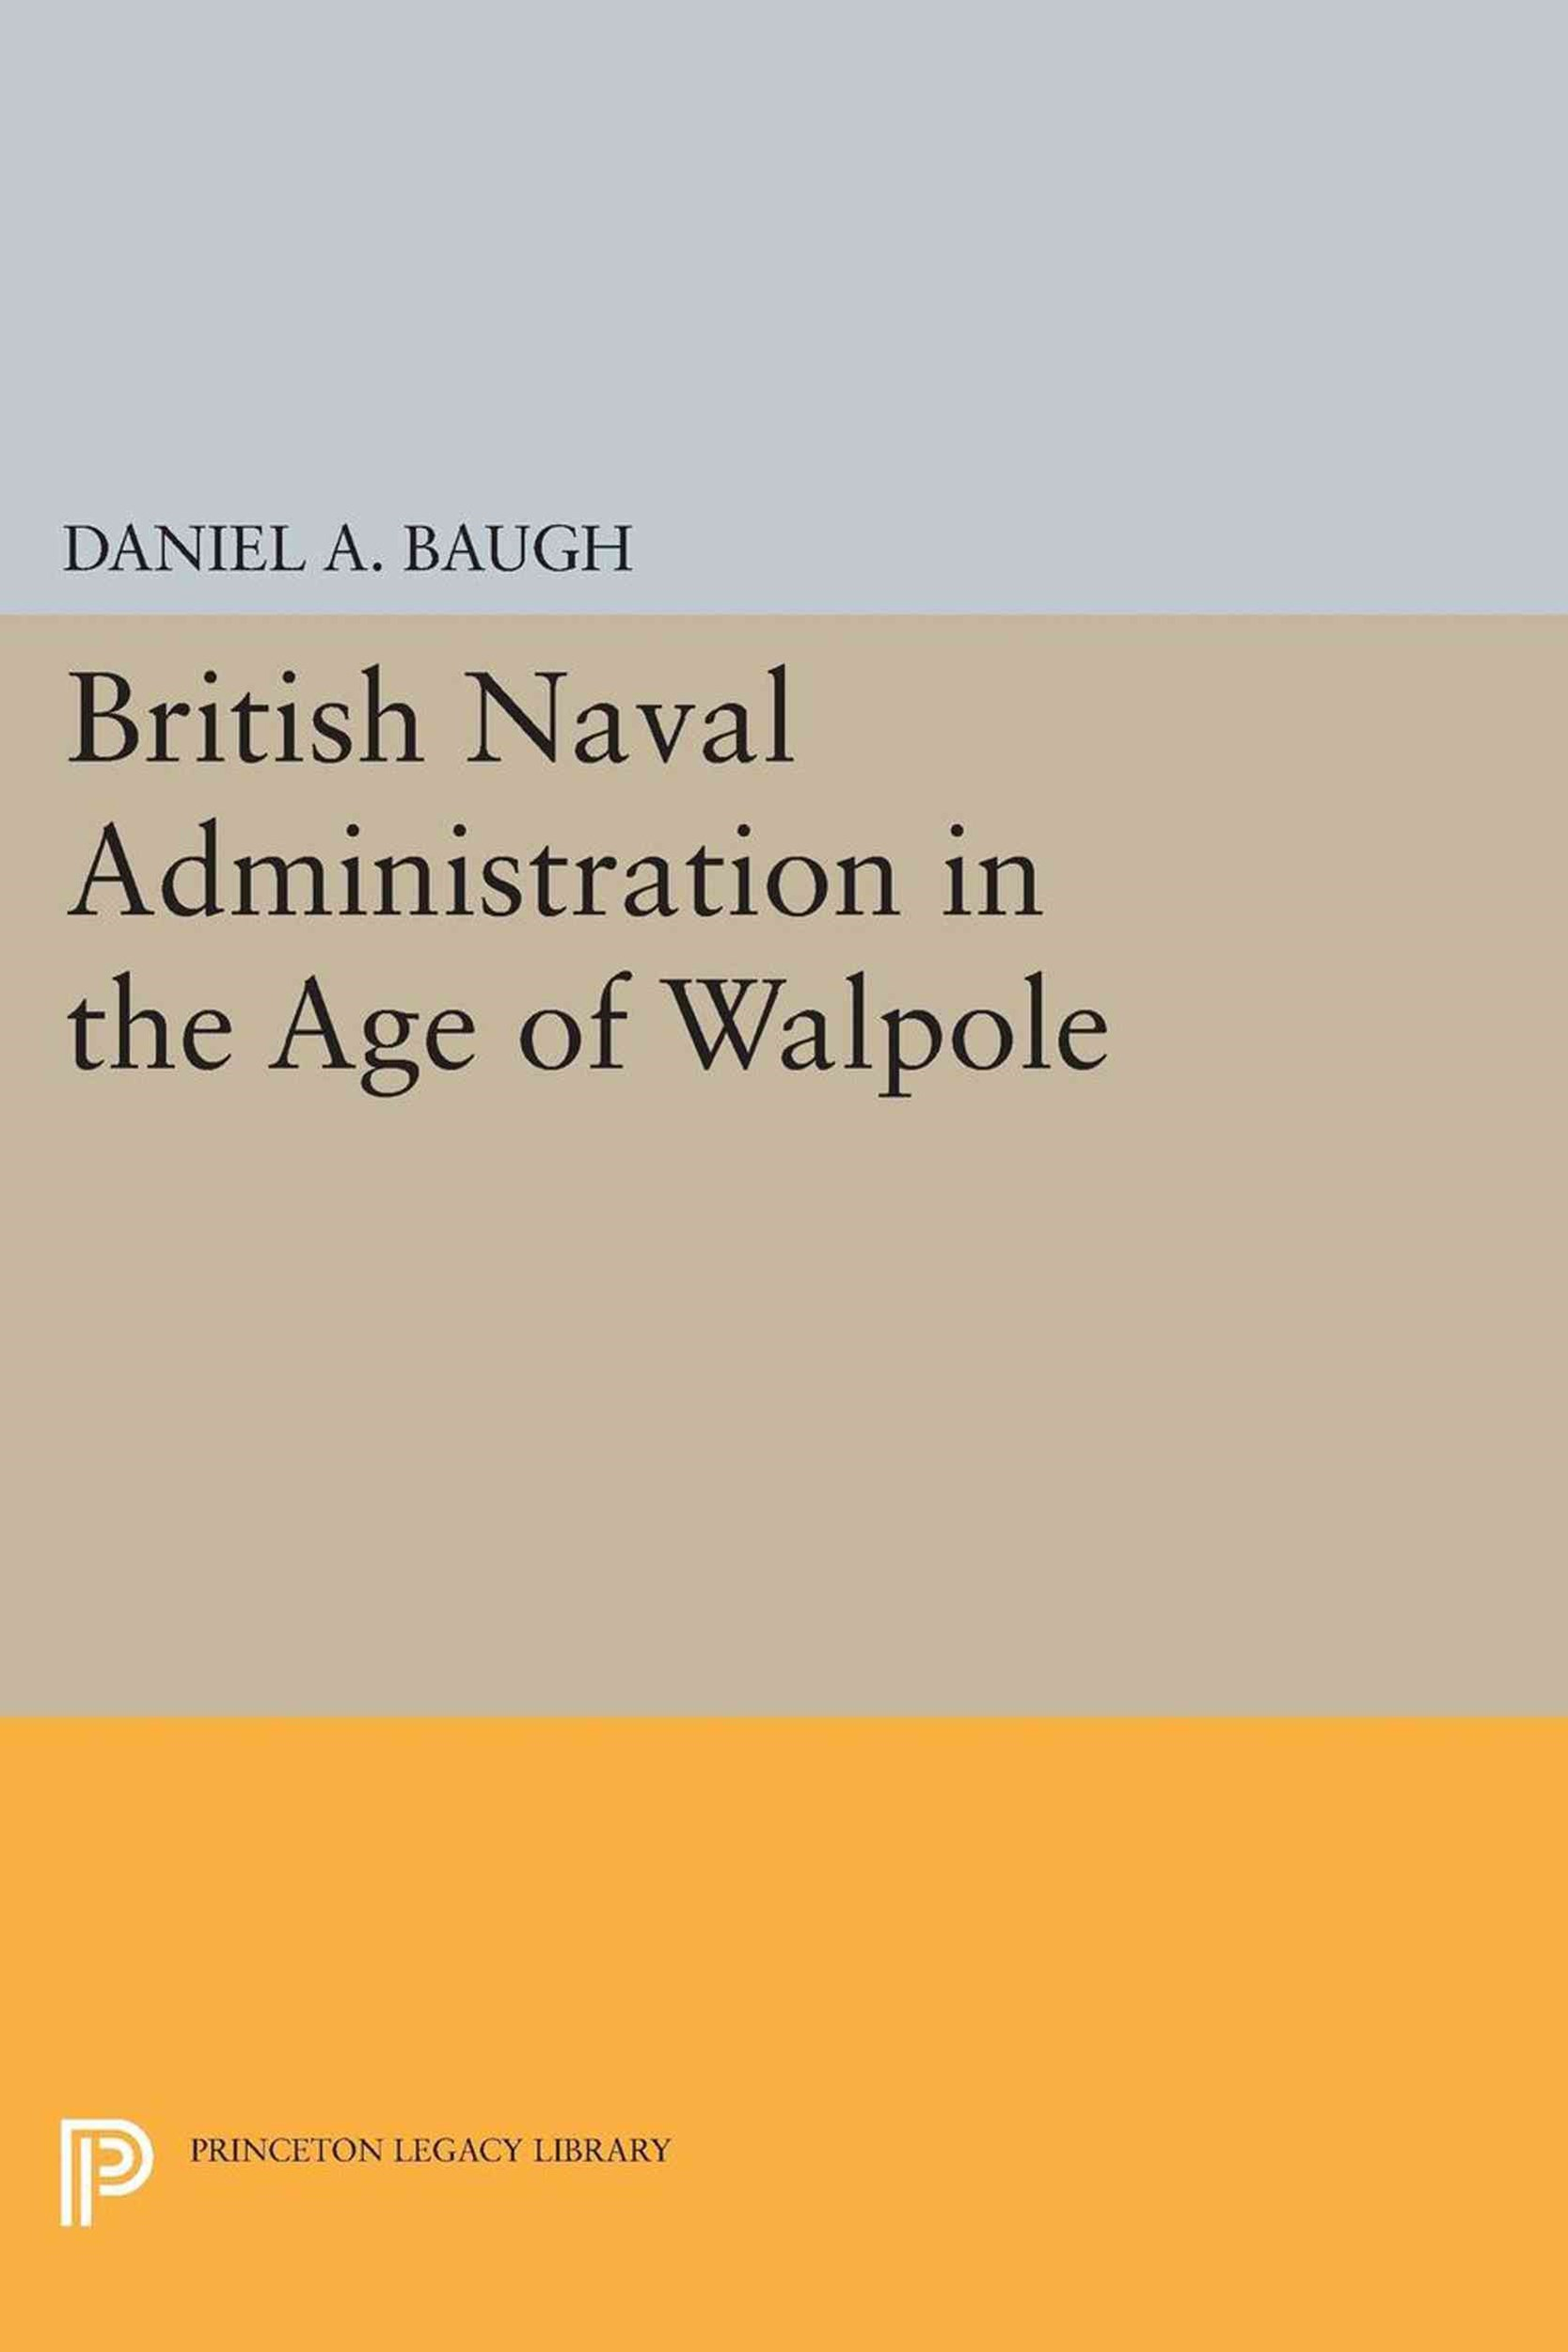 British Naval Administration in the Age of Walpole